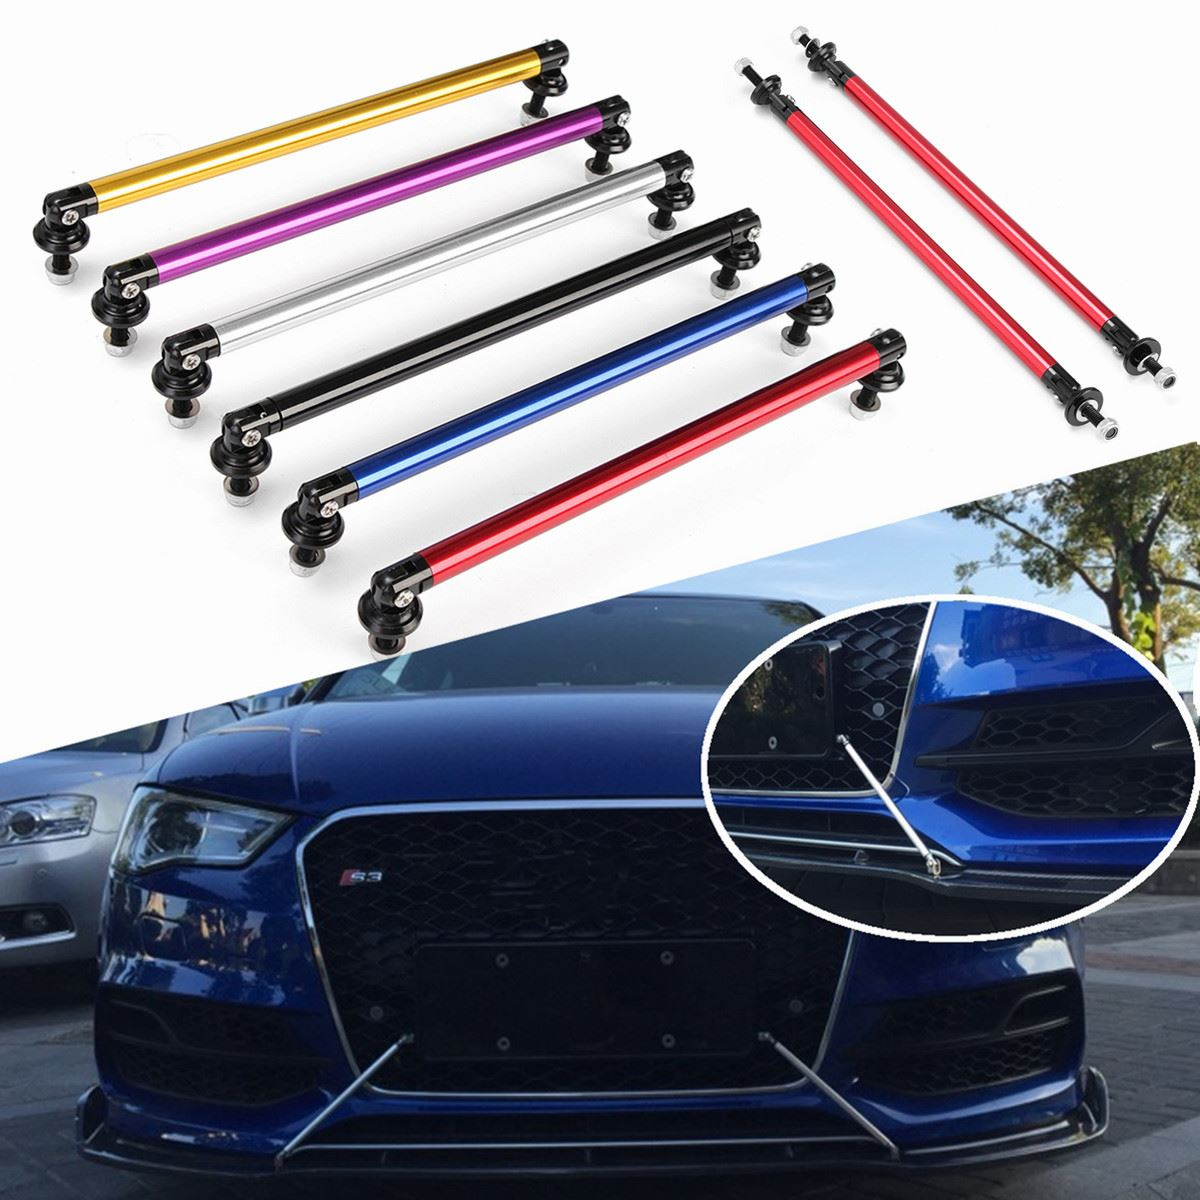 2x Universal 200mm Adjustable Front Rear Bumper Lip Splitter Rod Support Bars moschino cheap and chic короткое платье